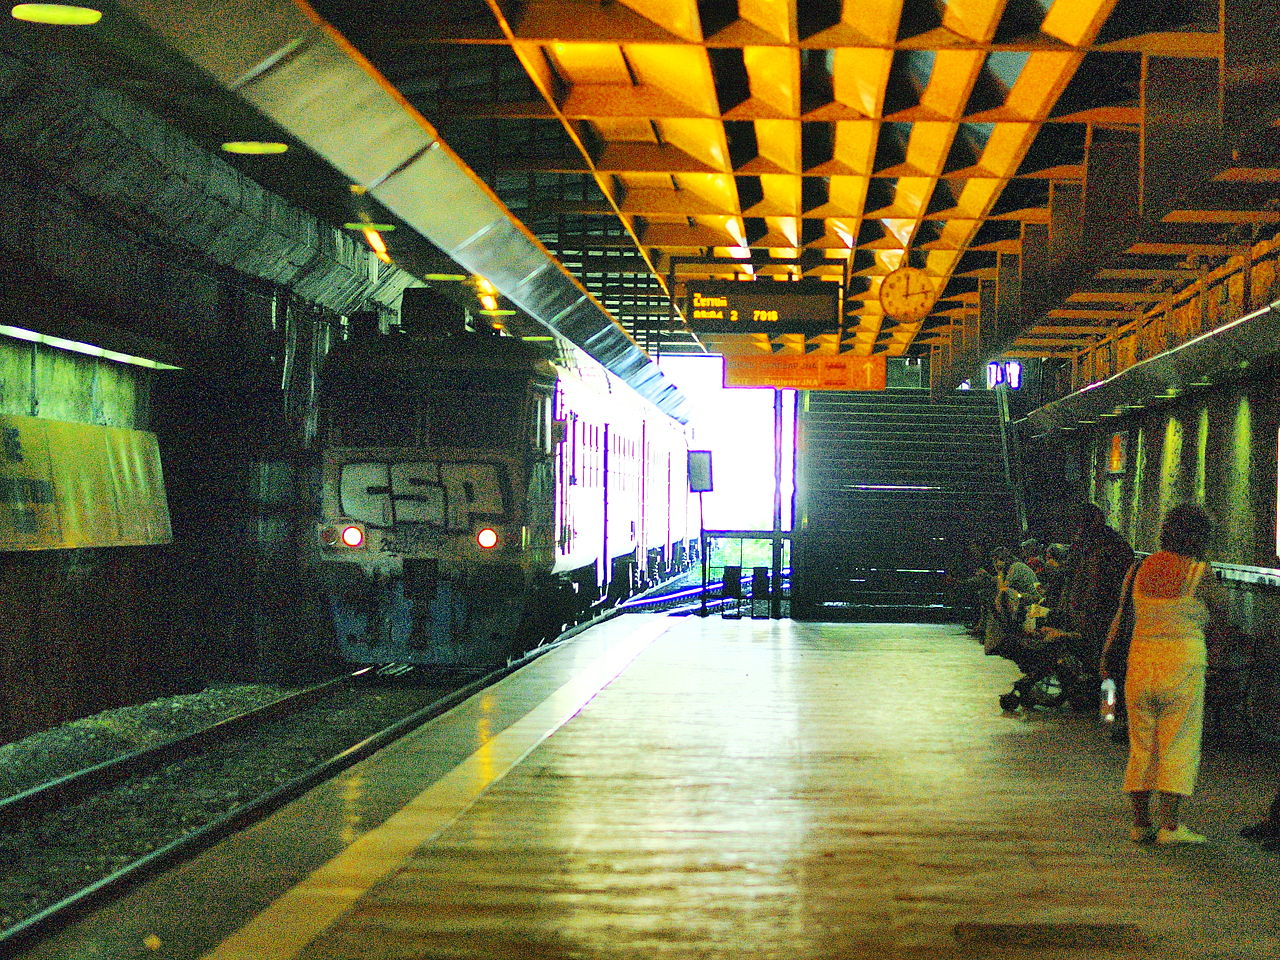 kara_or_ev_park_railway_station_2.jpg